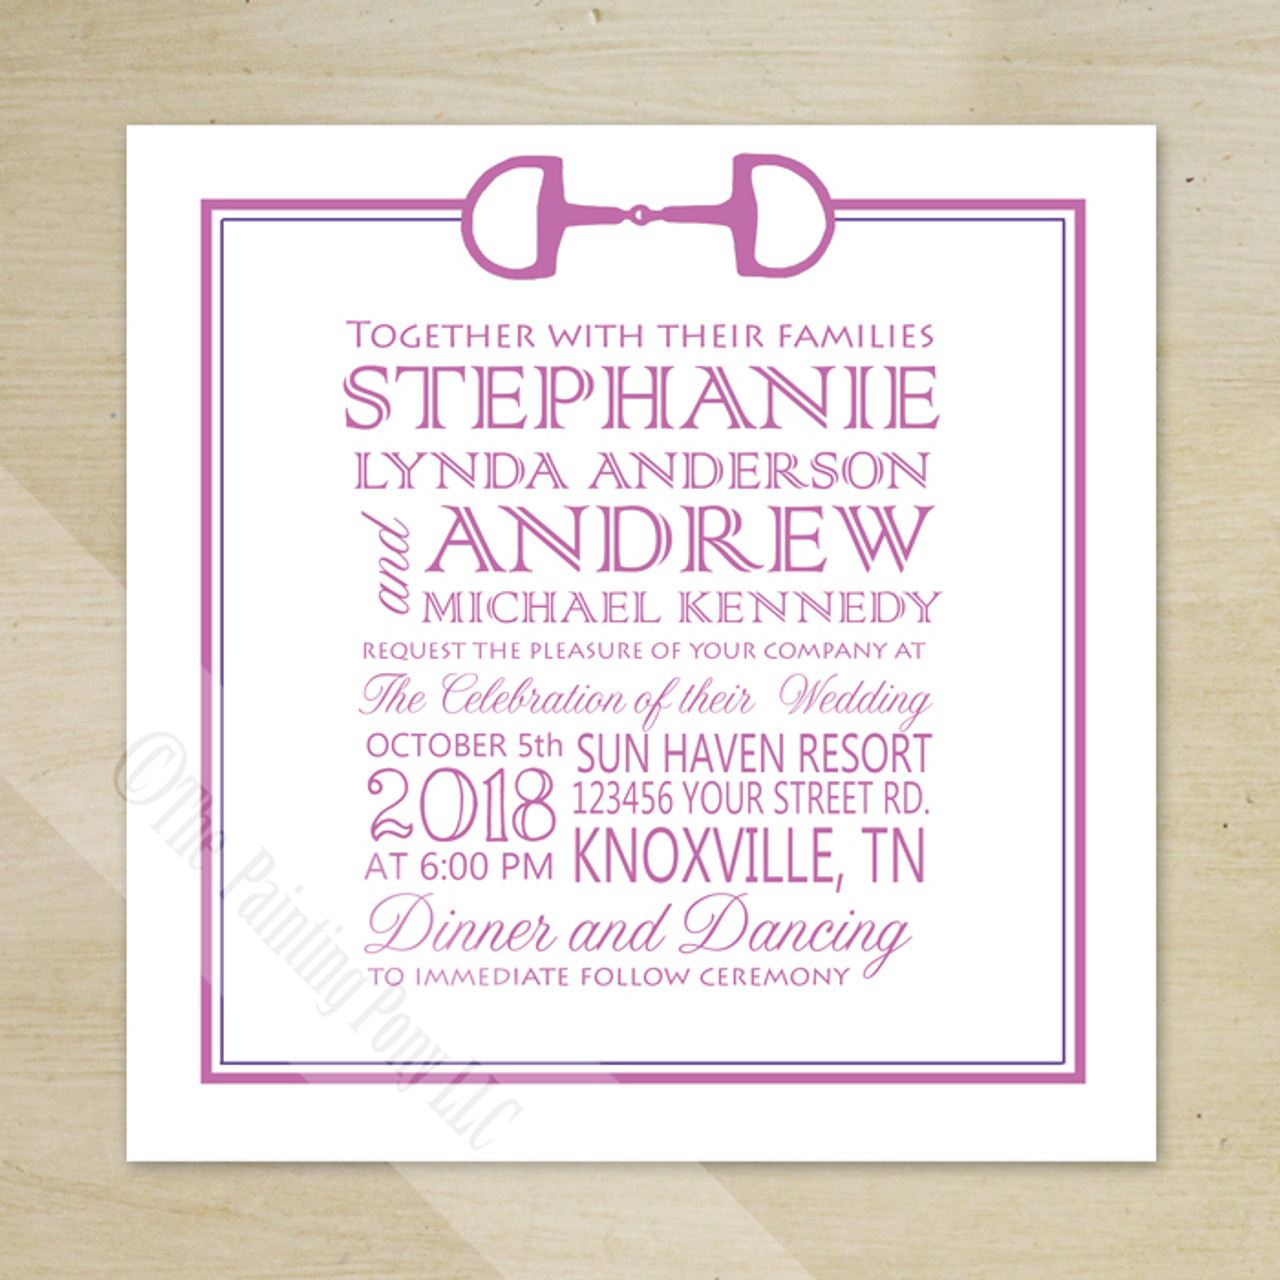 Equestrian Stationery - Birthday & Wedding Invitations - Horse ...